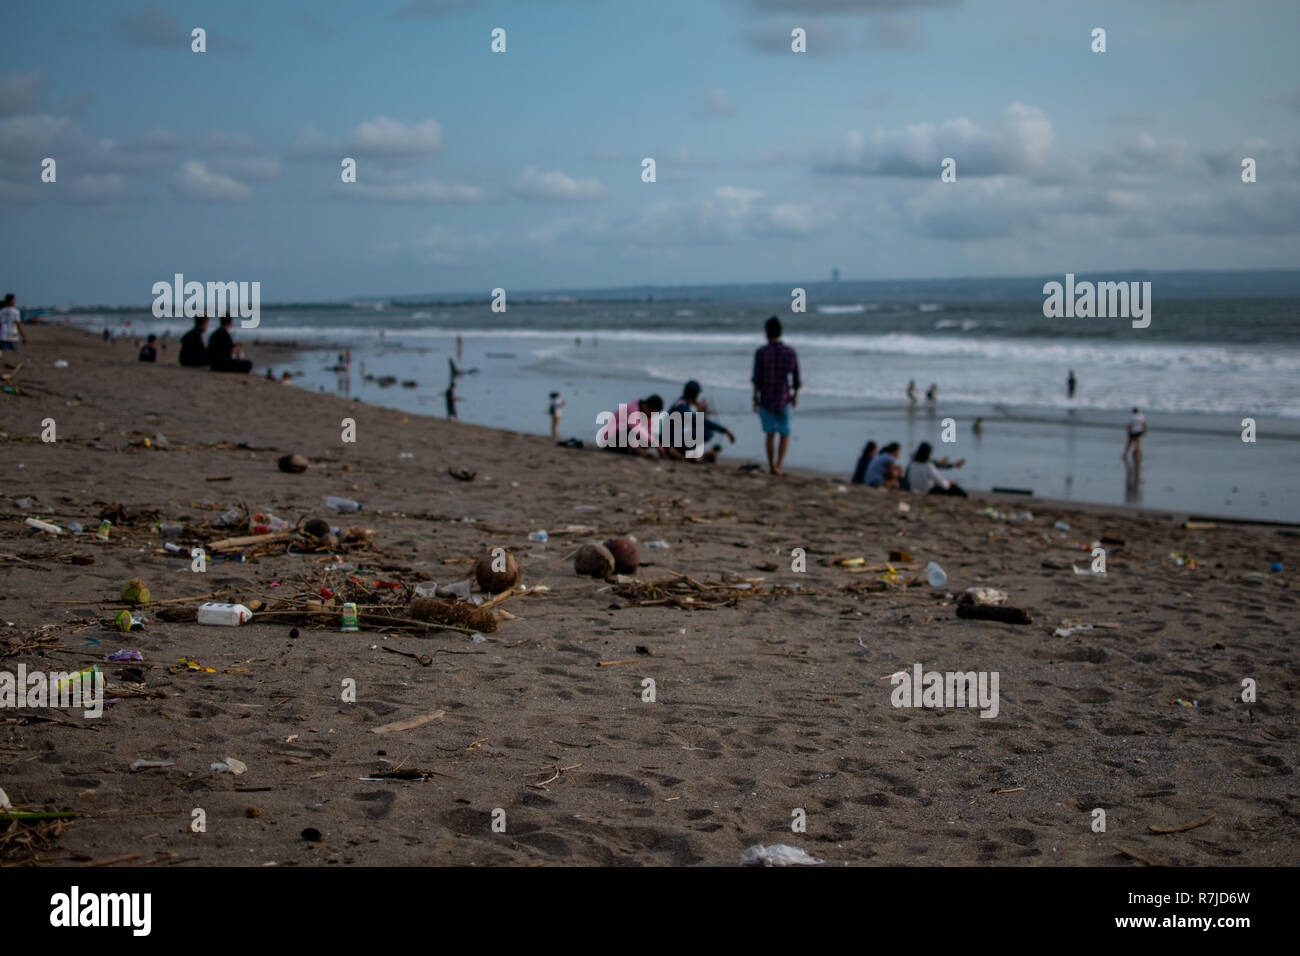 People seat near trash on the Beach, a lot of plastic garbide on the beach of Indian ocean - Stock Image